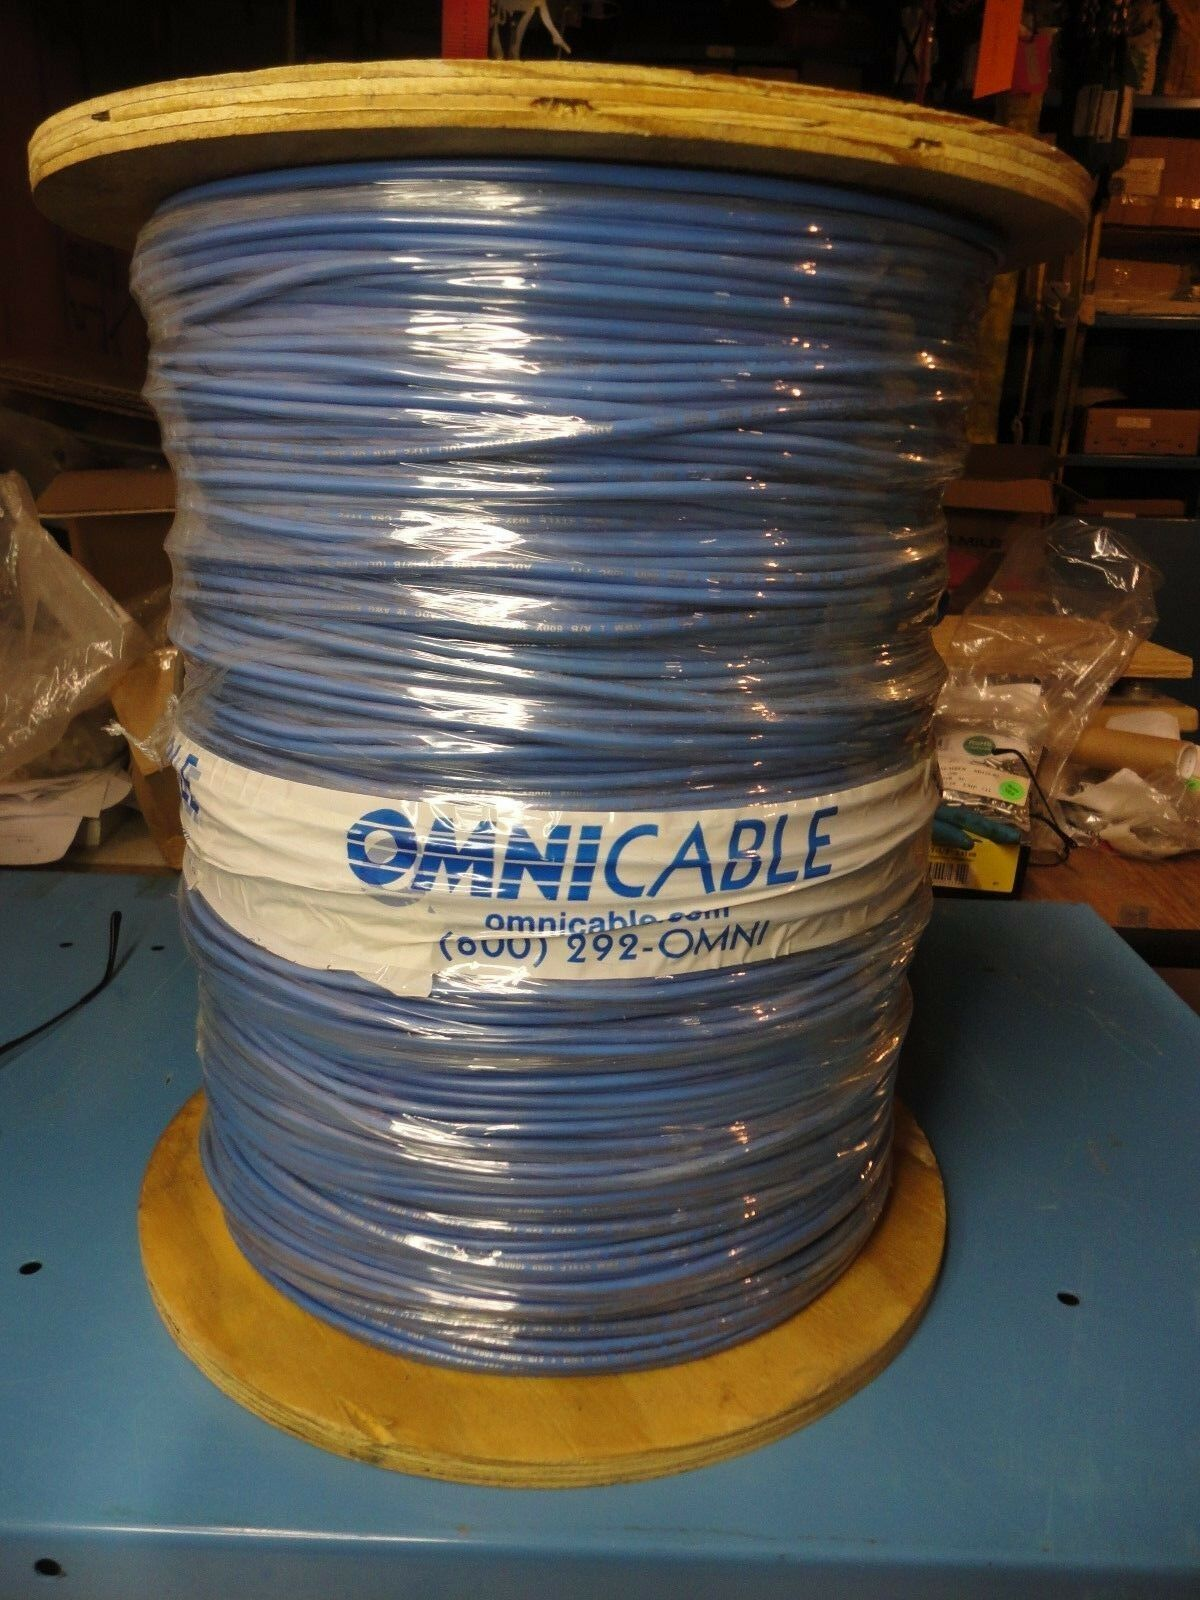 2500 FT Coil Omni Cable L712st-05 Tinned Copper Hookup Wire 12 AWG ...